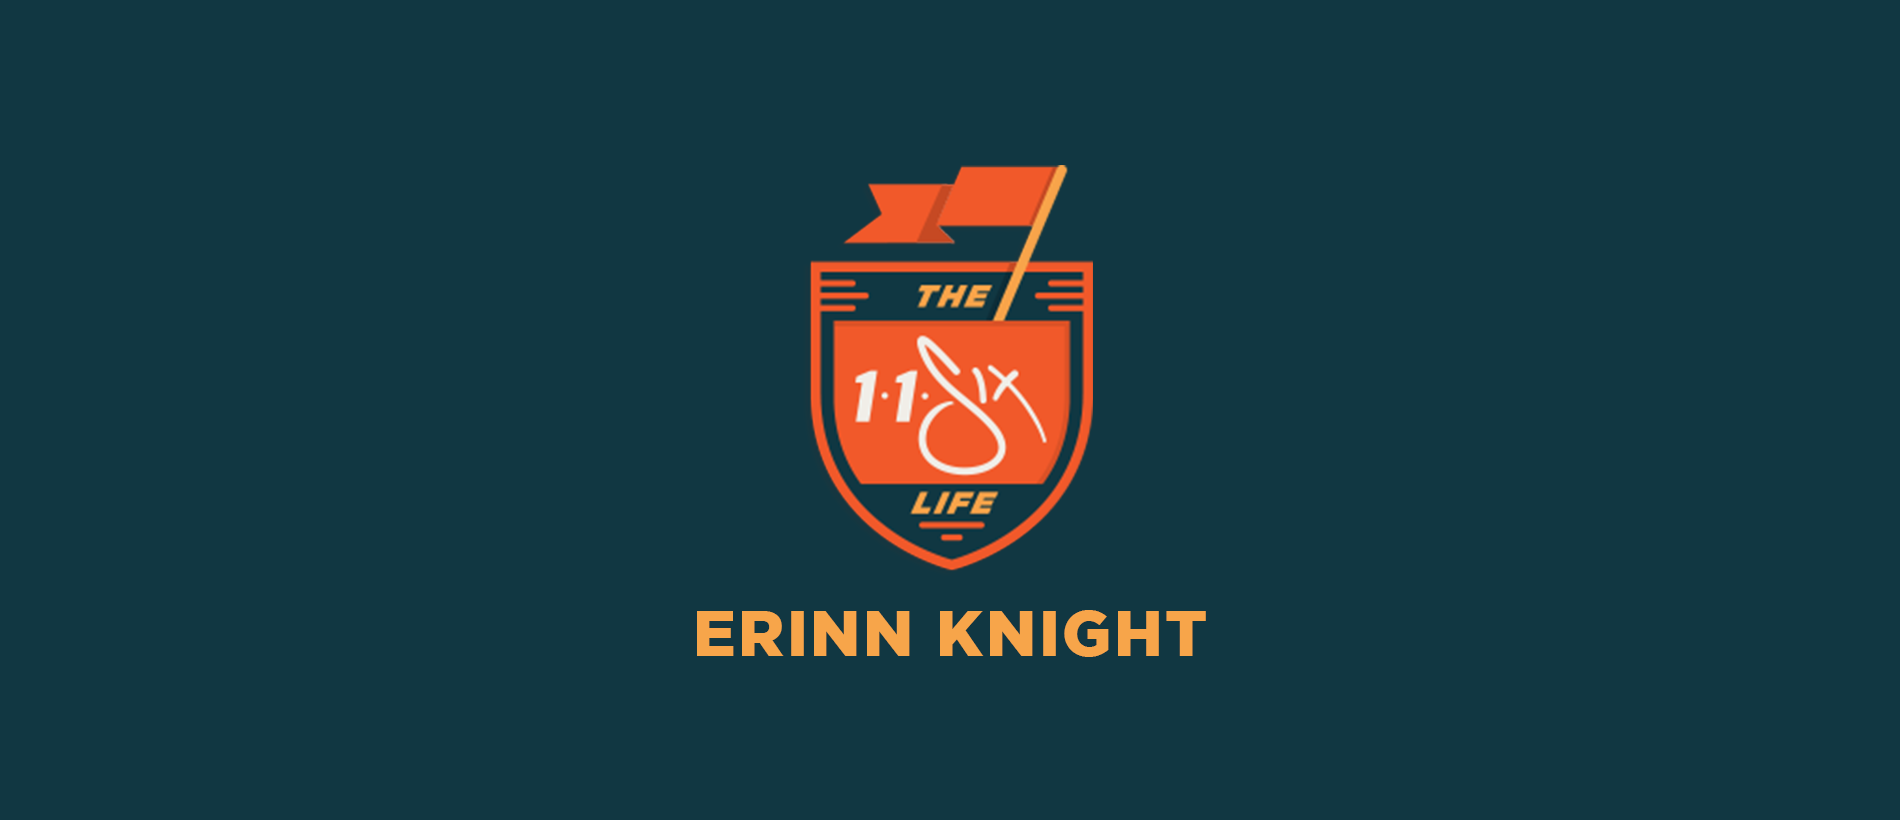 The 116 Life X Erinn Knight